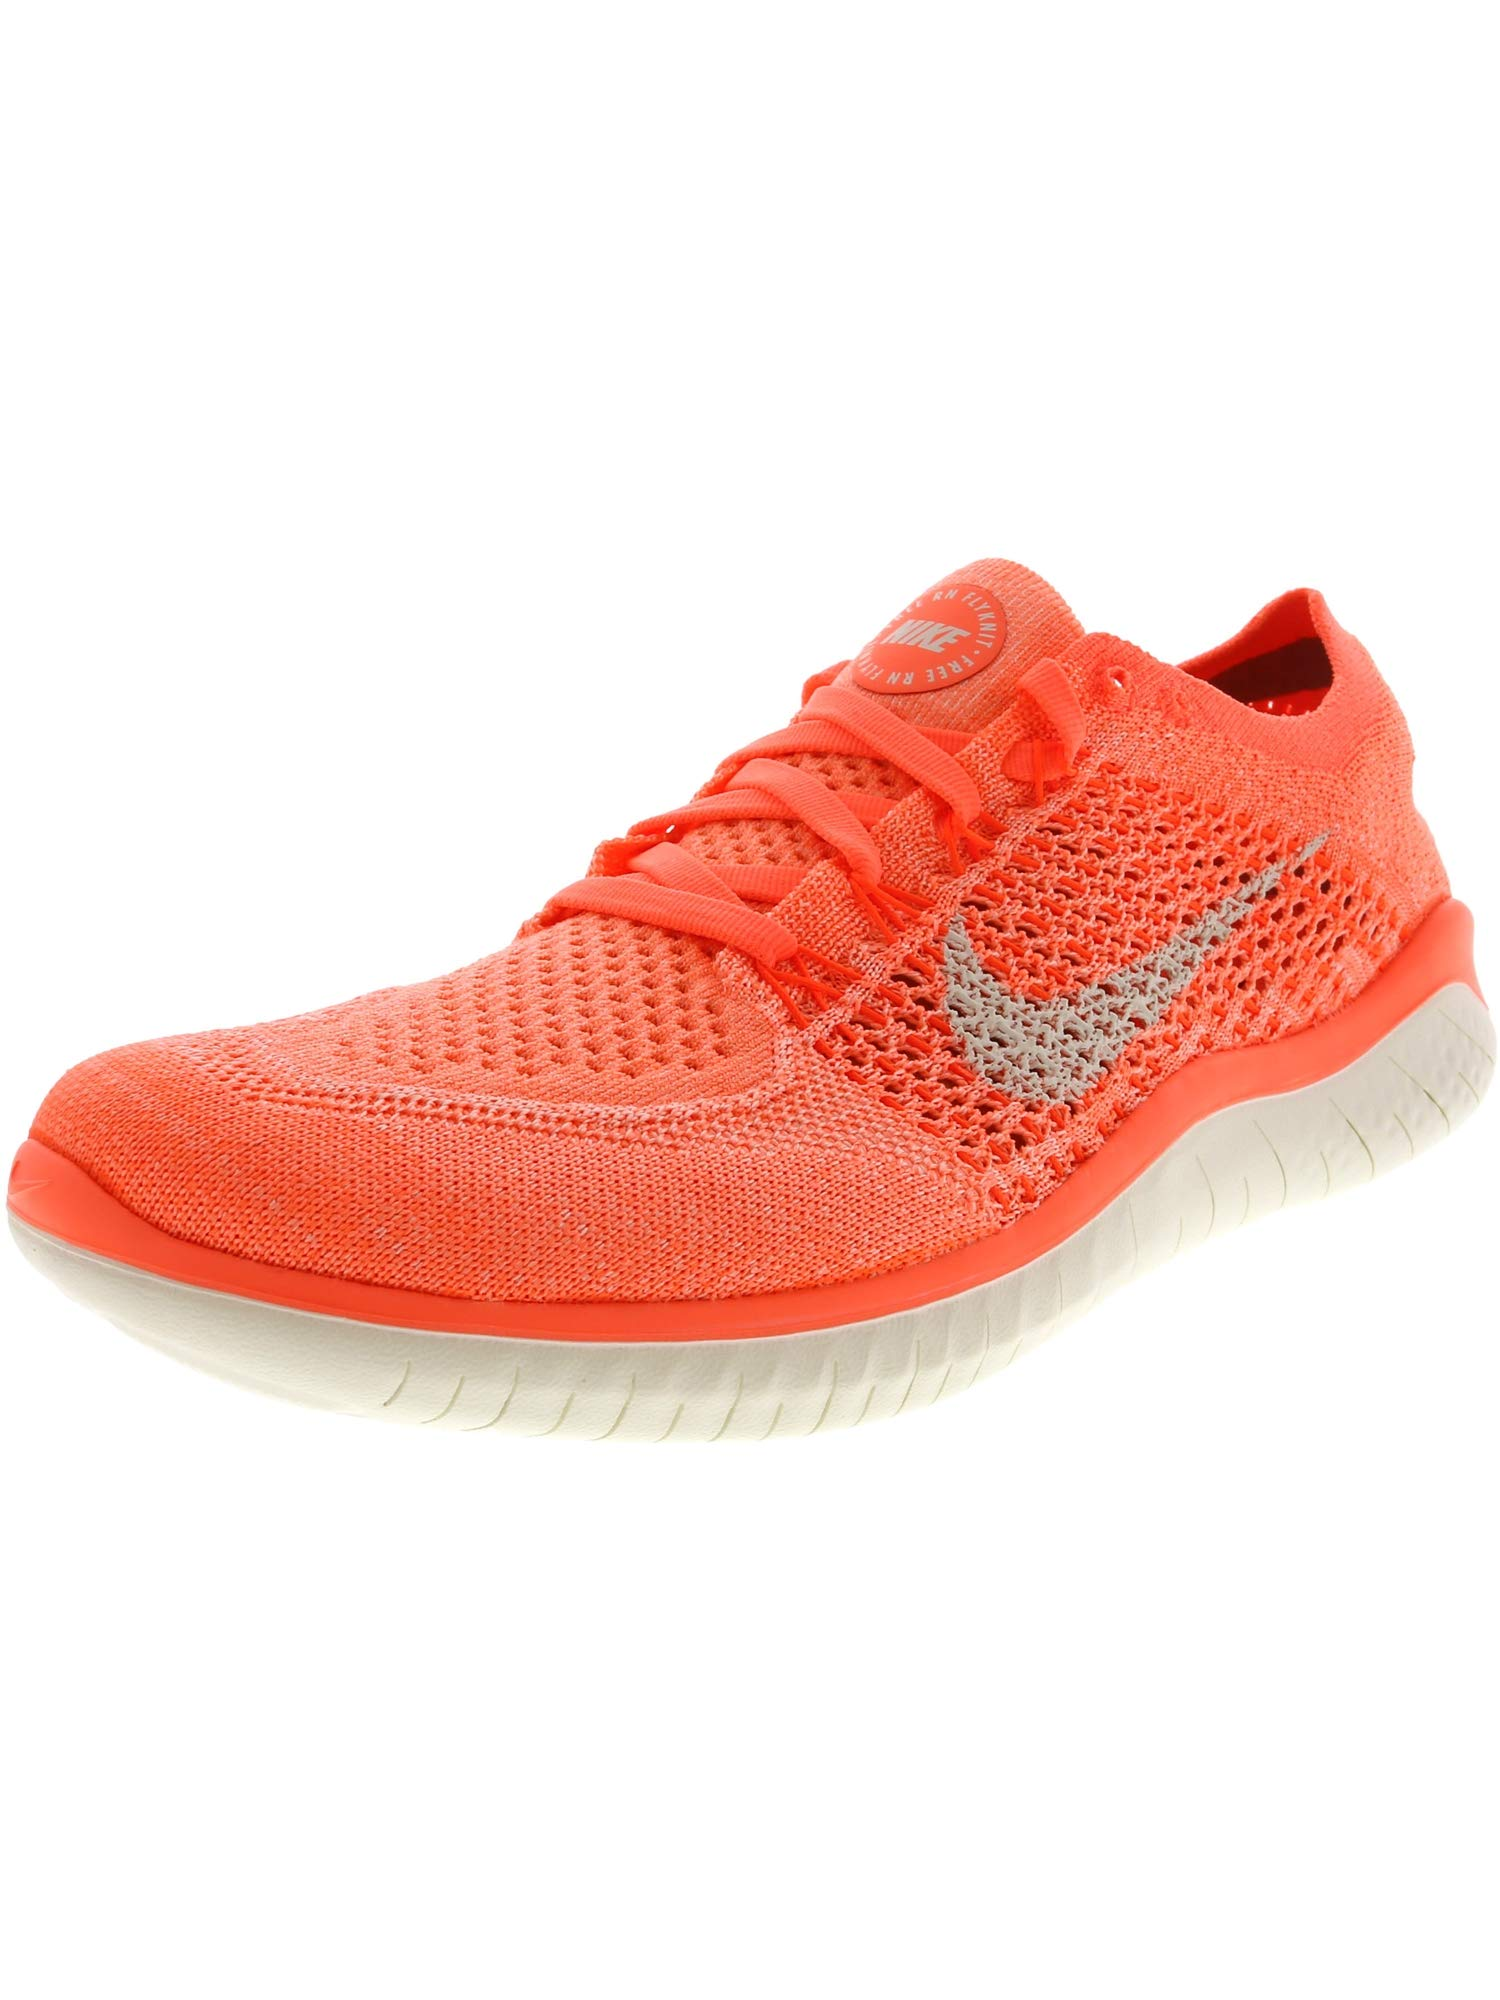 3c34b4bfe40 Galleon - Nike Women s Free Rn Flyknit 2018 Crimson Pulse Sail Ankle-High  Running Shoe - 10M